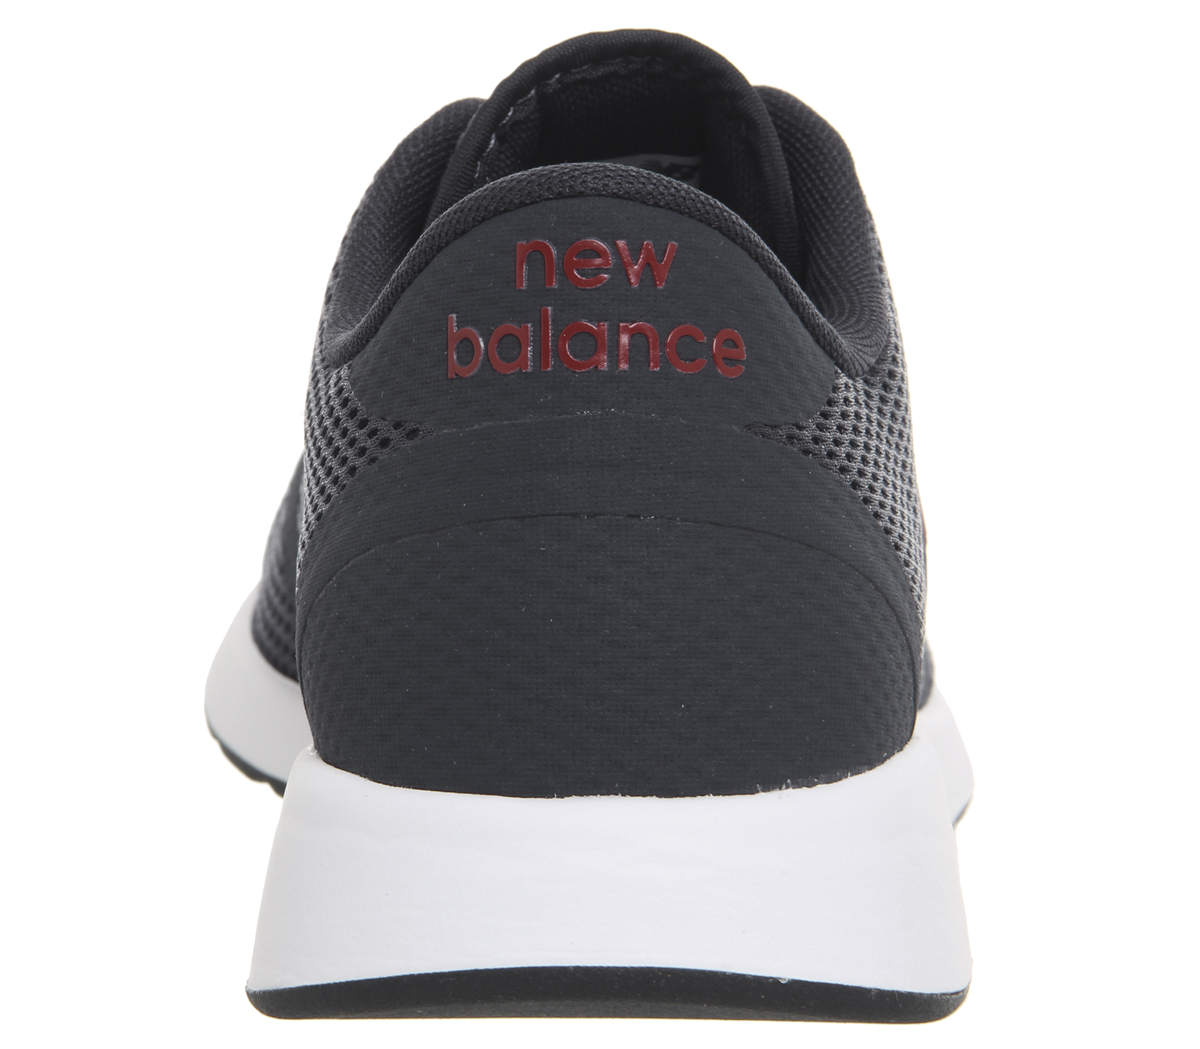 Uomo New Balance Mrl420 Schuhes Trainers OUTER SPACE Trainers Schuhes Mrl420 a120f4